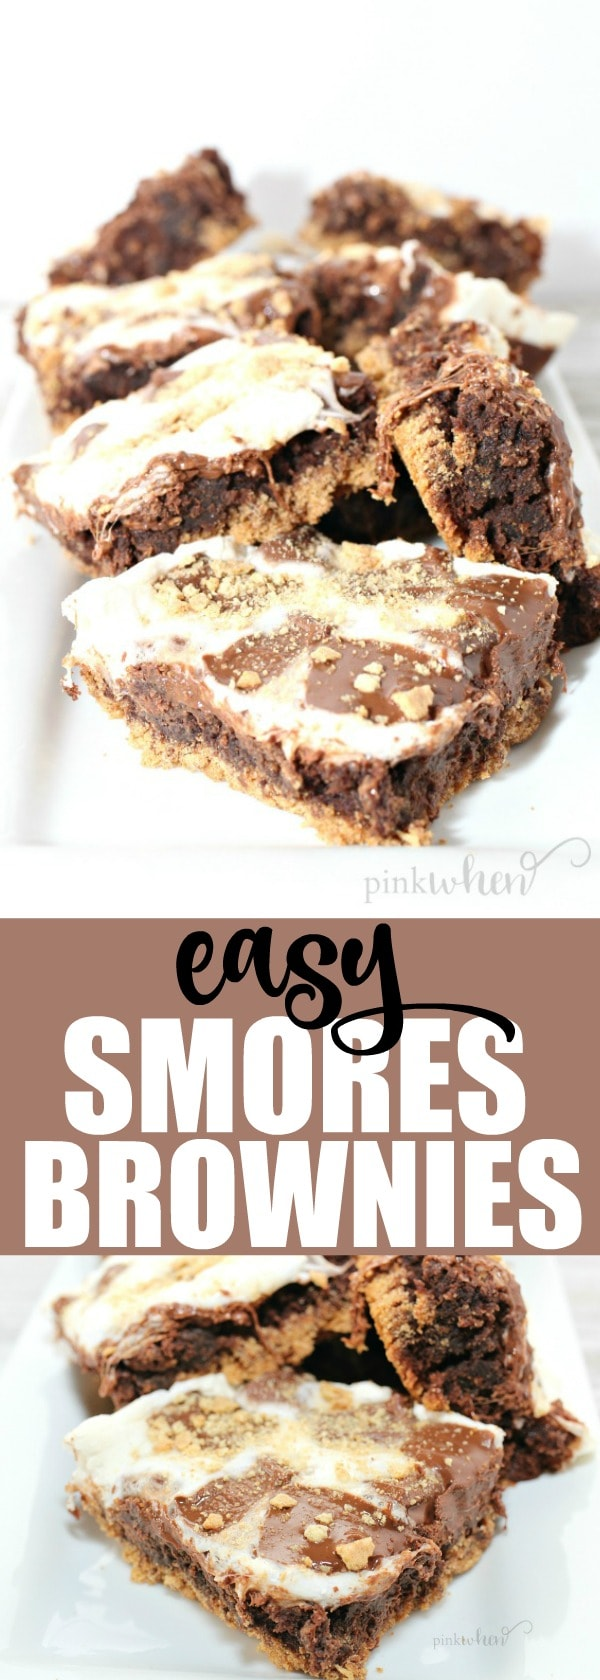 Delicious and Easy Brownie Recipe | S'mores Brownies are so easy and flavorful, and two of my favorite desserts combined into one. #easybrownies #brownierecipe #dessertrecipes